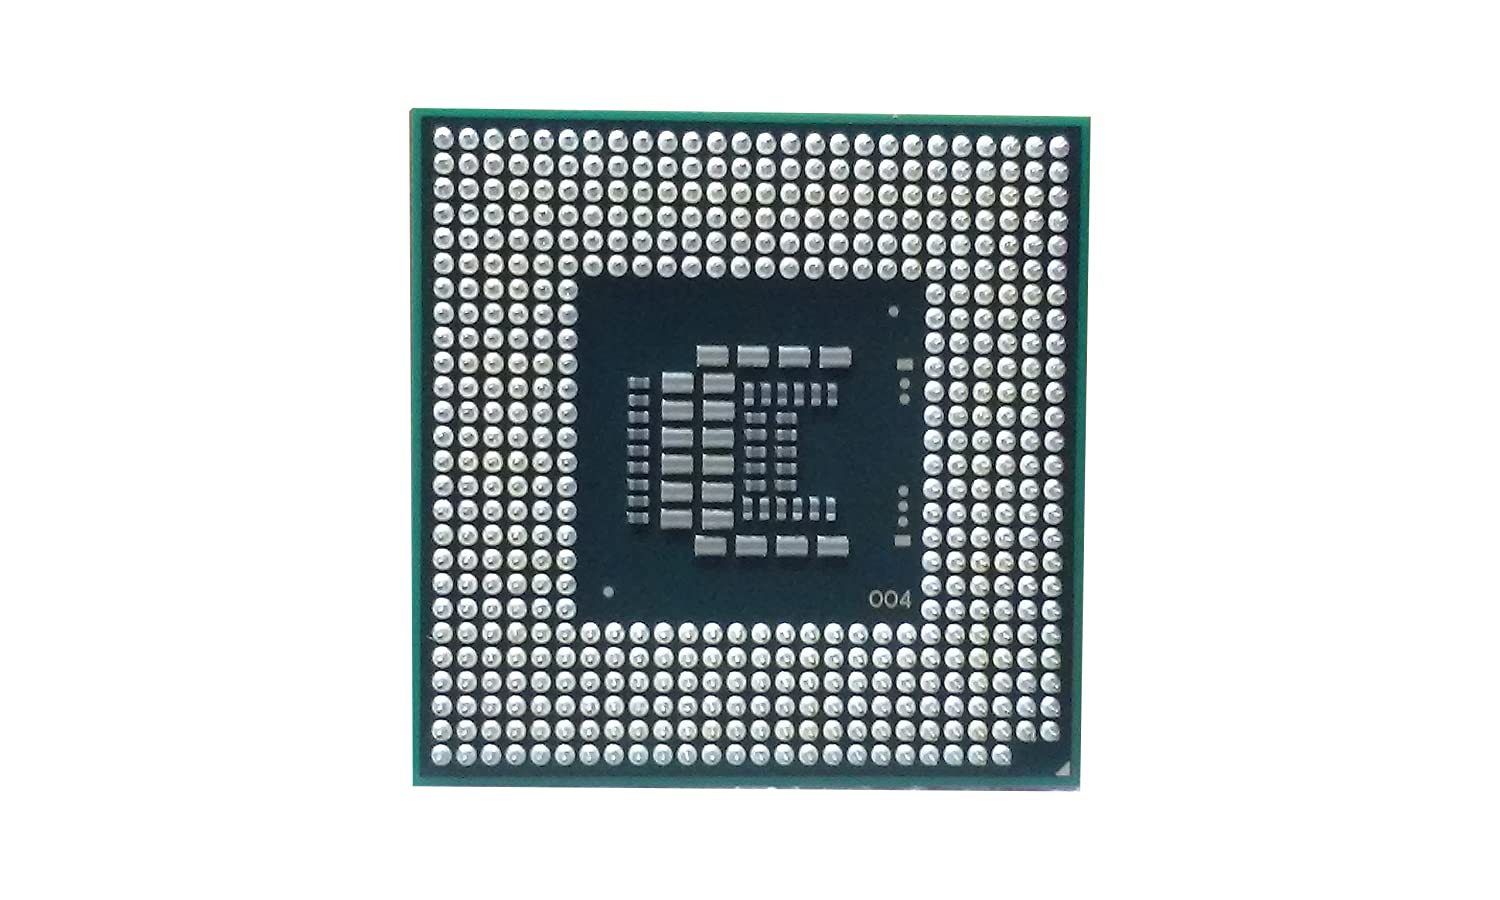 Lot of 5 Intel Core 2 Duo P8600 2.4GHz Socket P 1066MHz SLGFD